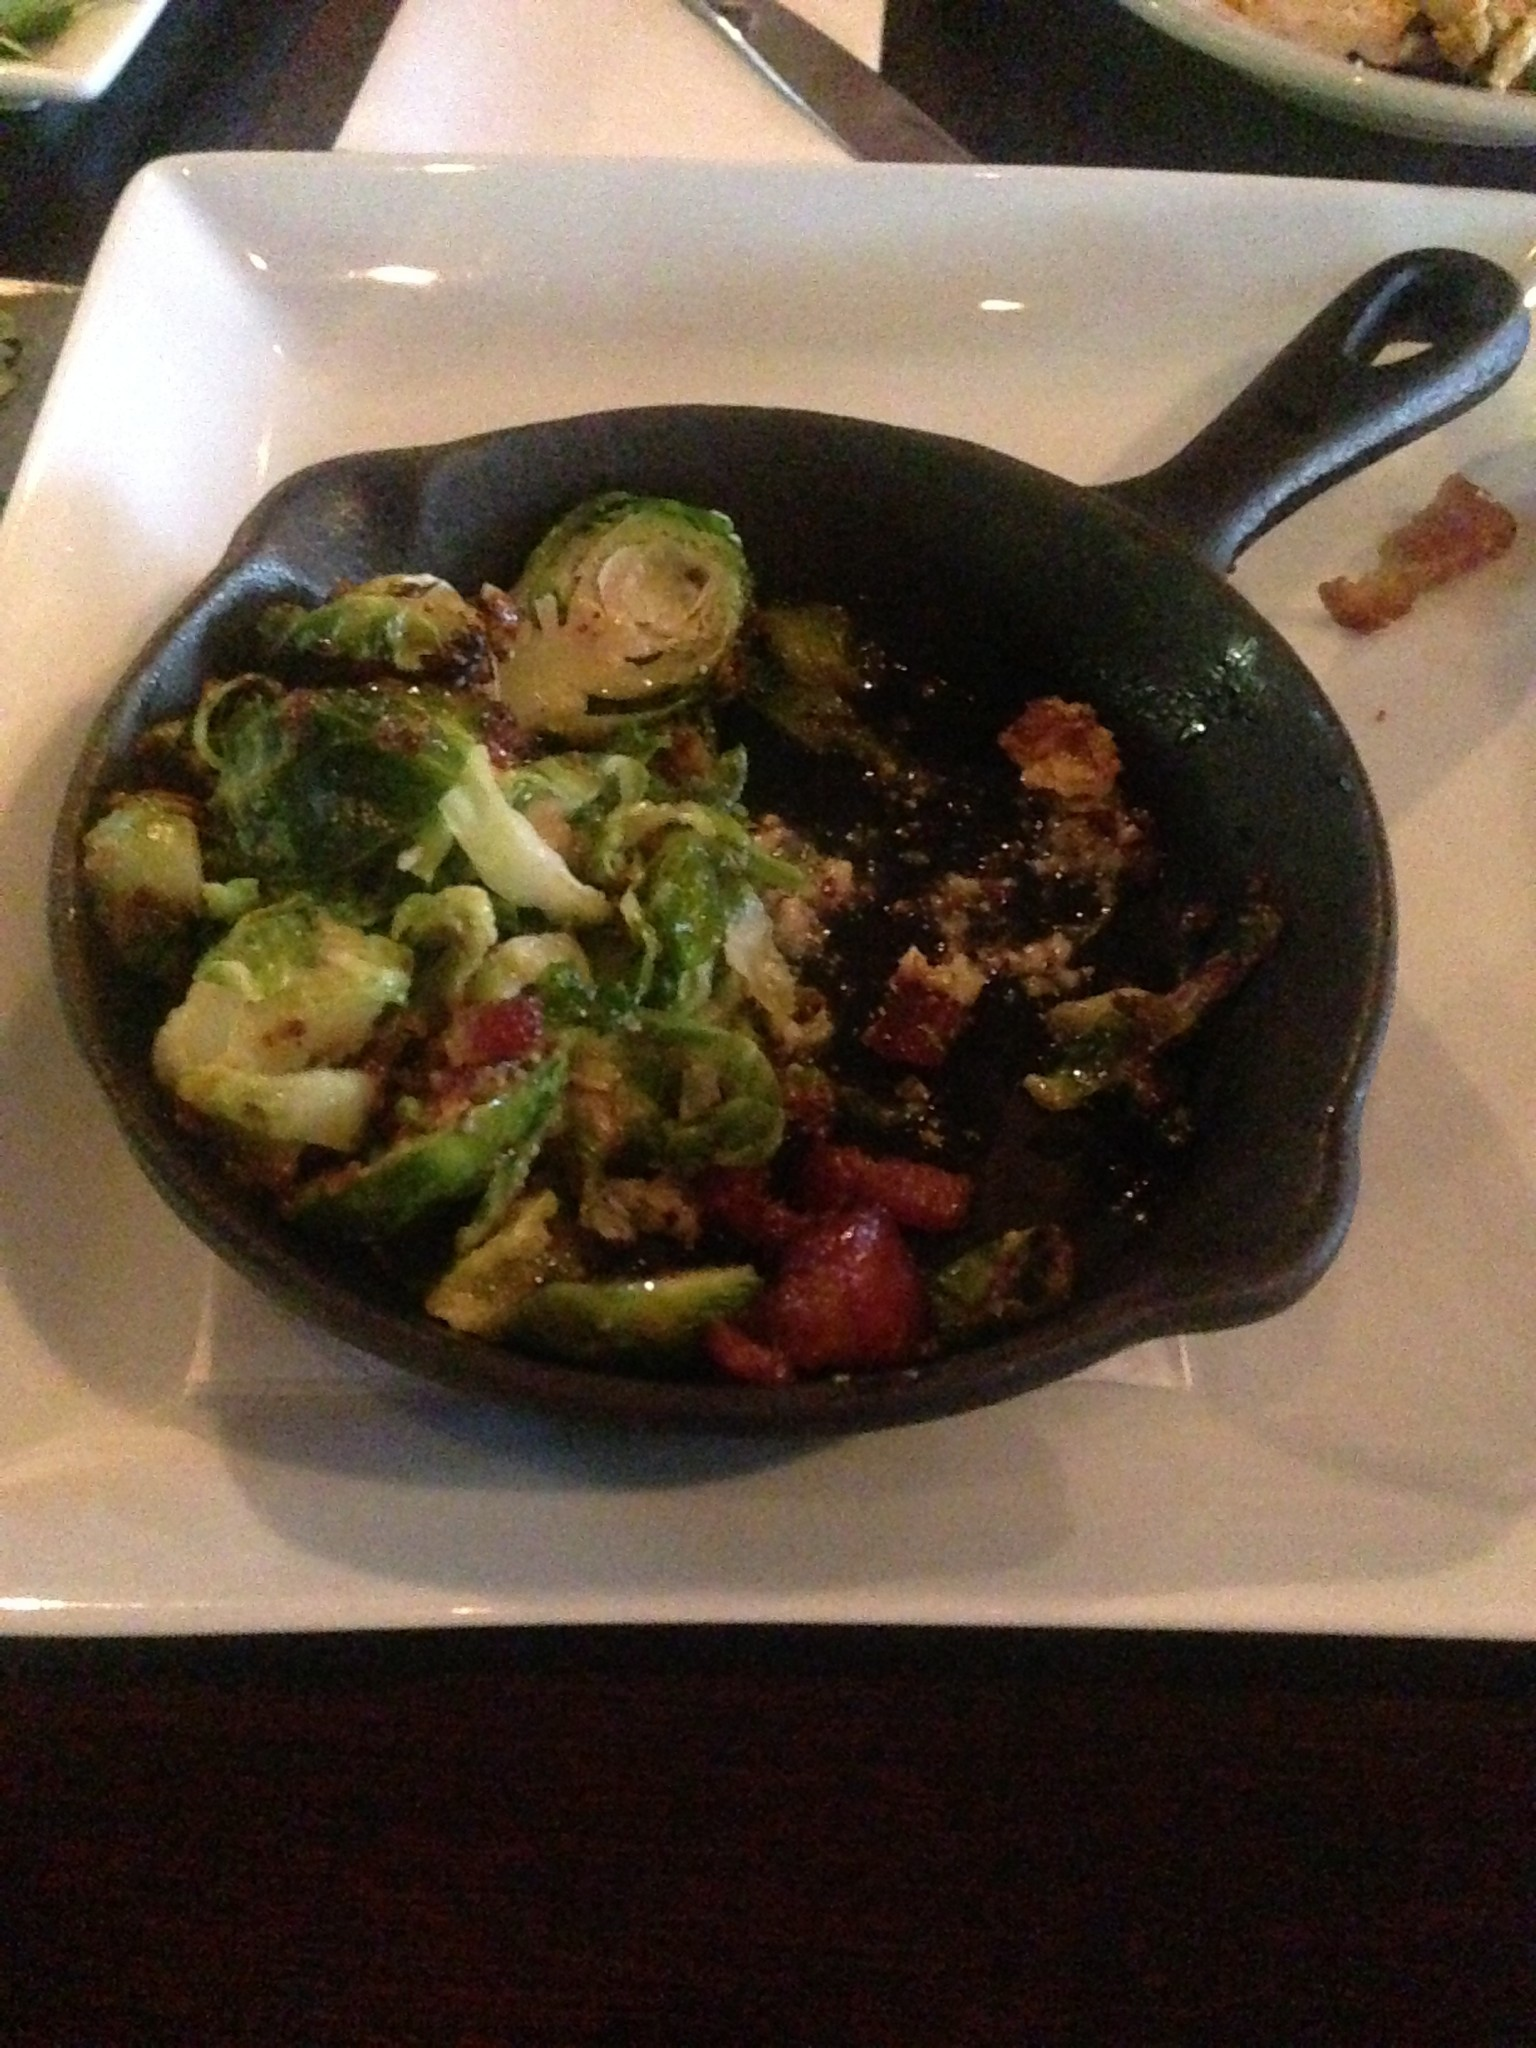 Davidson Street Public House - Brussels Sprouts